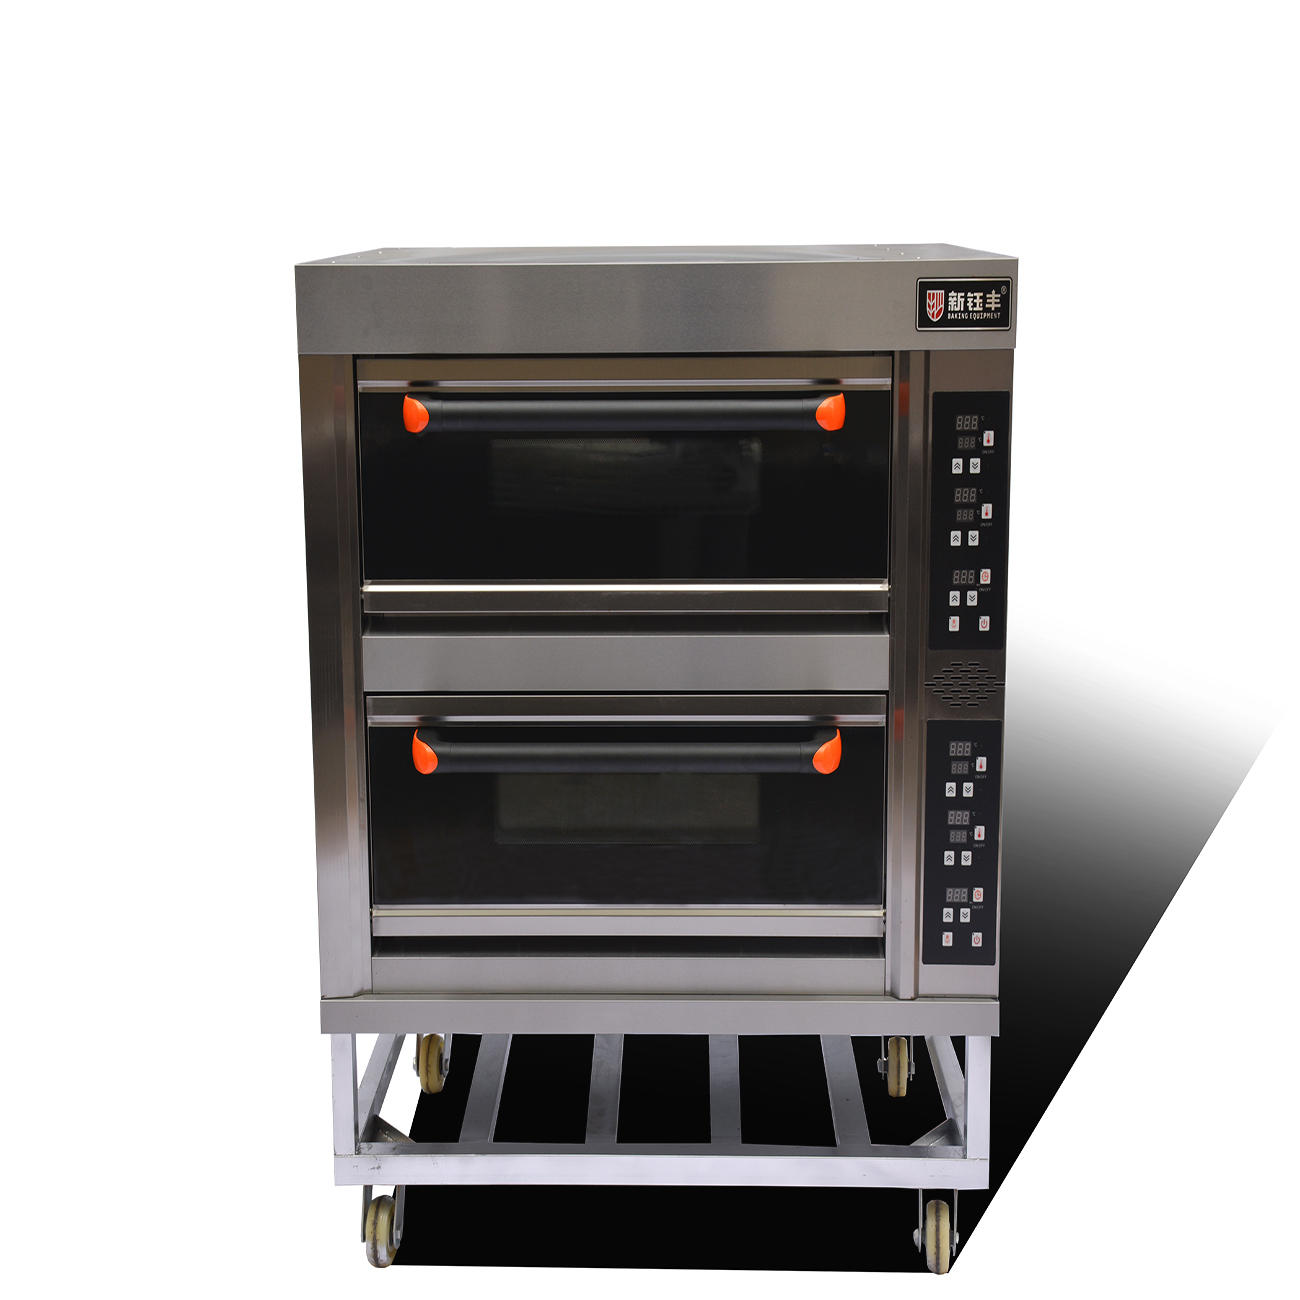 electric high temperature oven 2 deck 4 trays bread electric baking oven